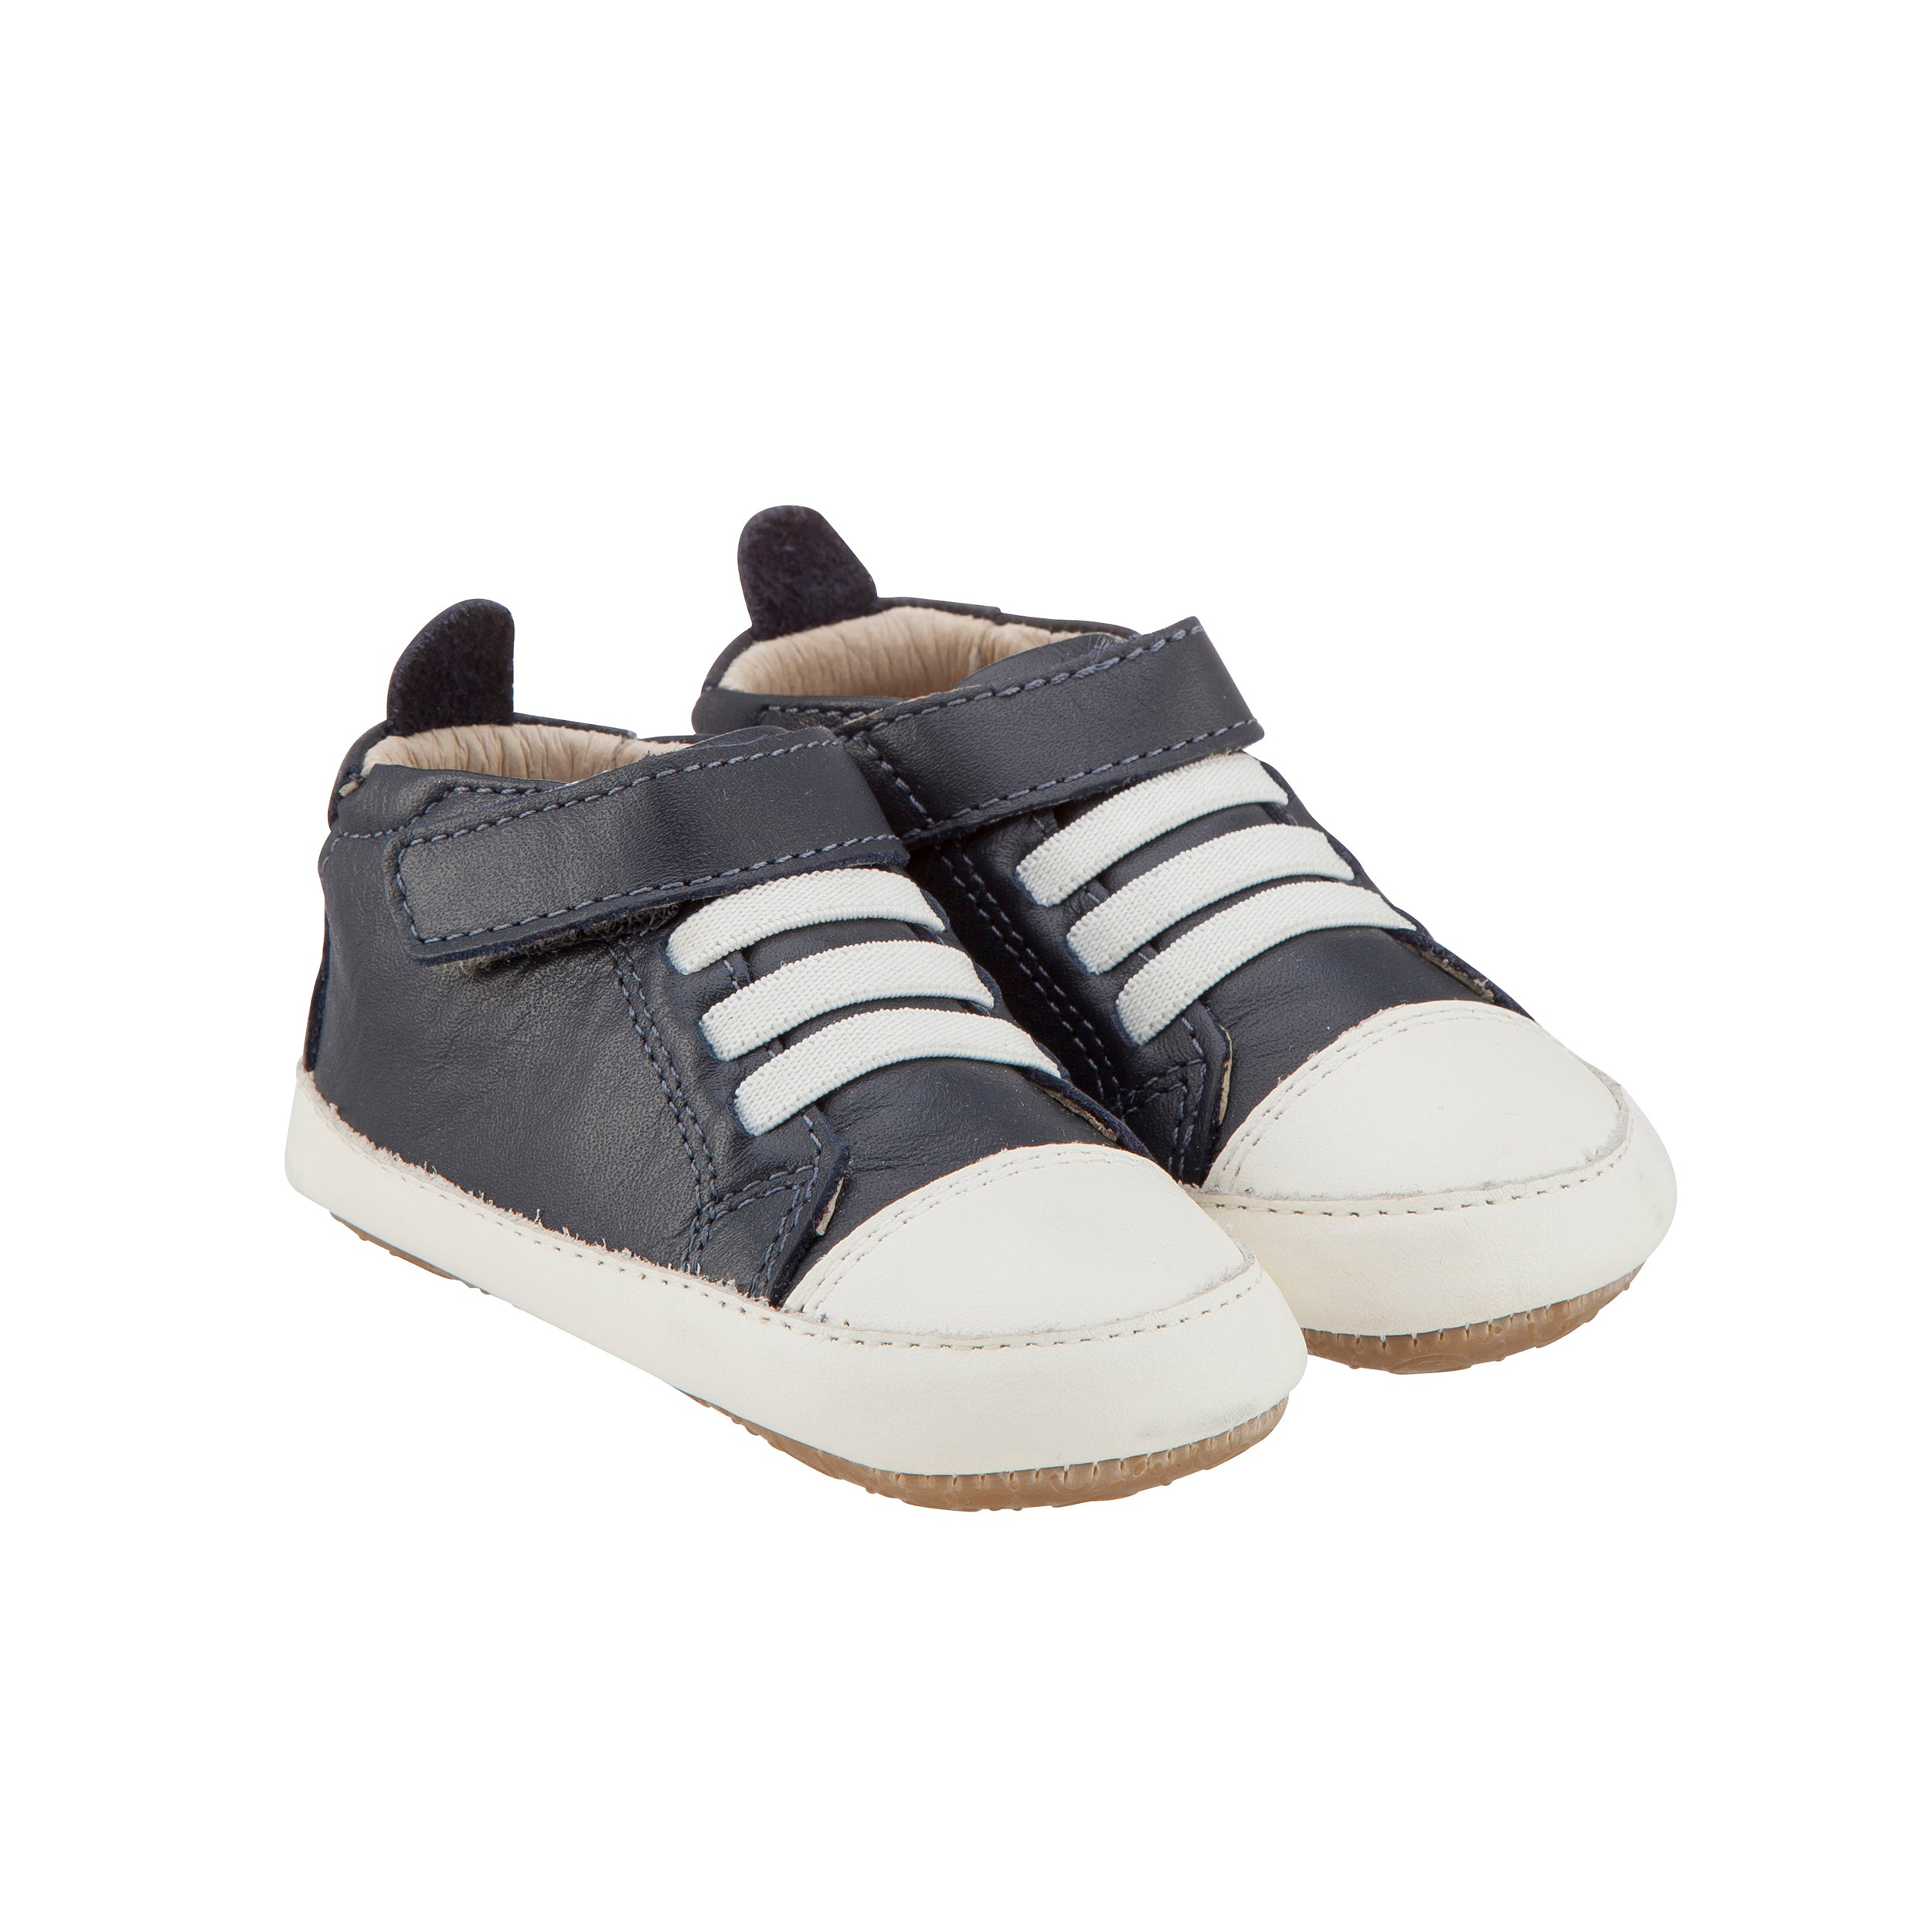 Kix Shoe - Navy / White